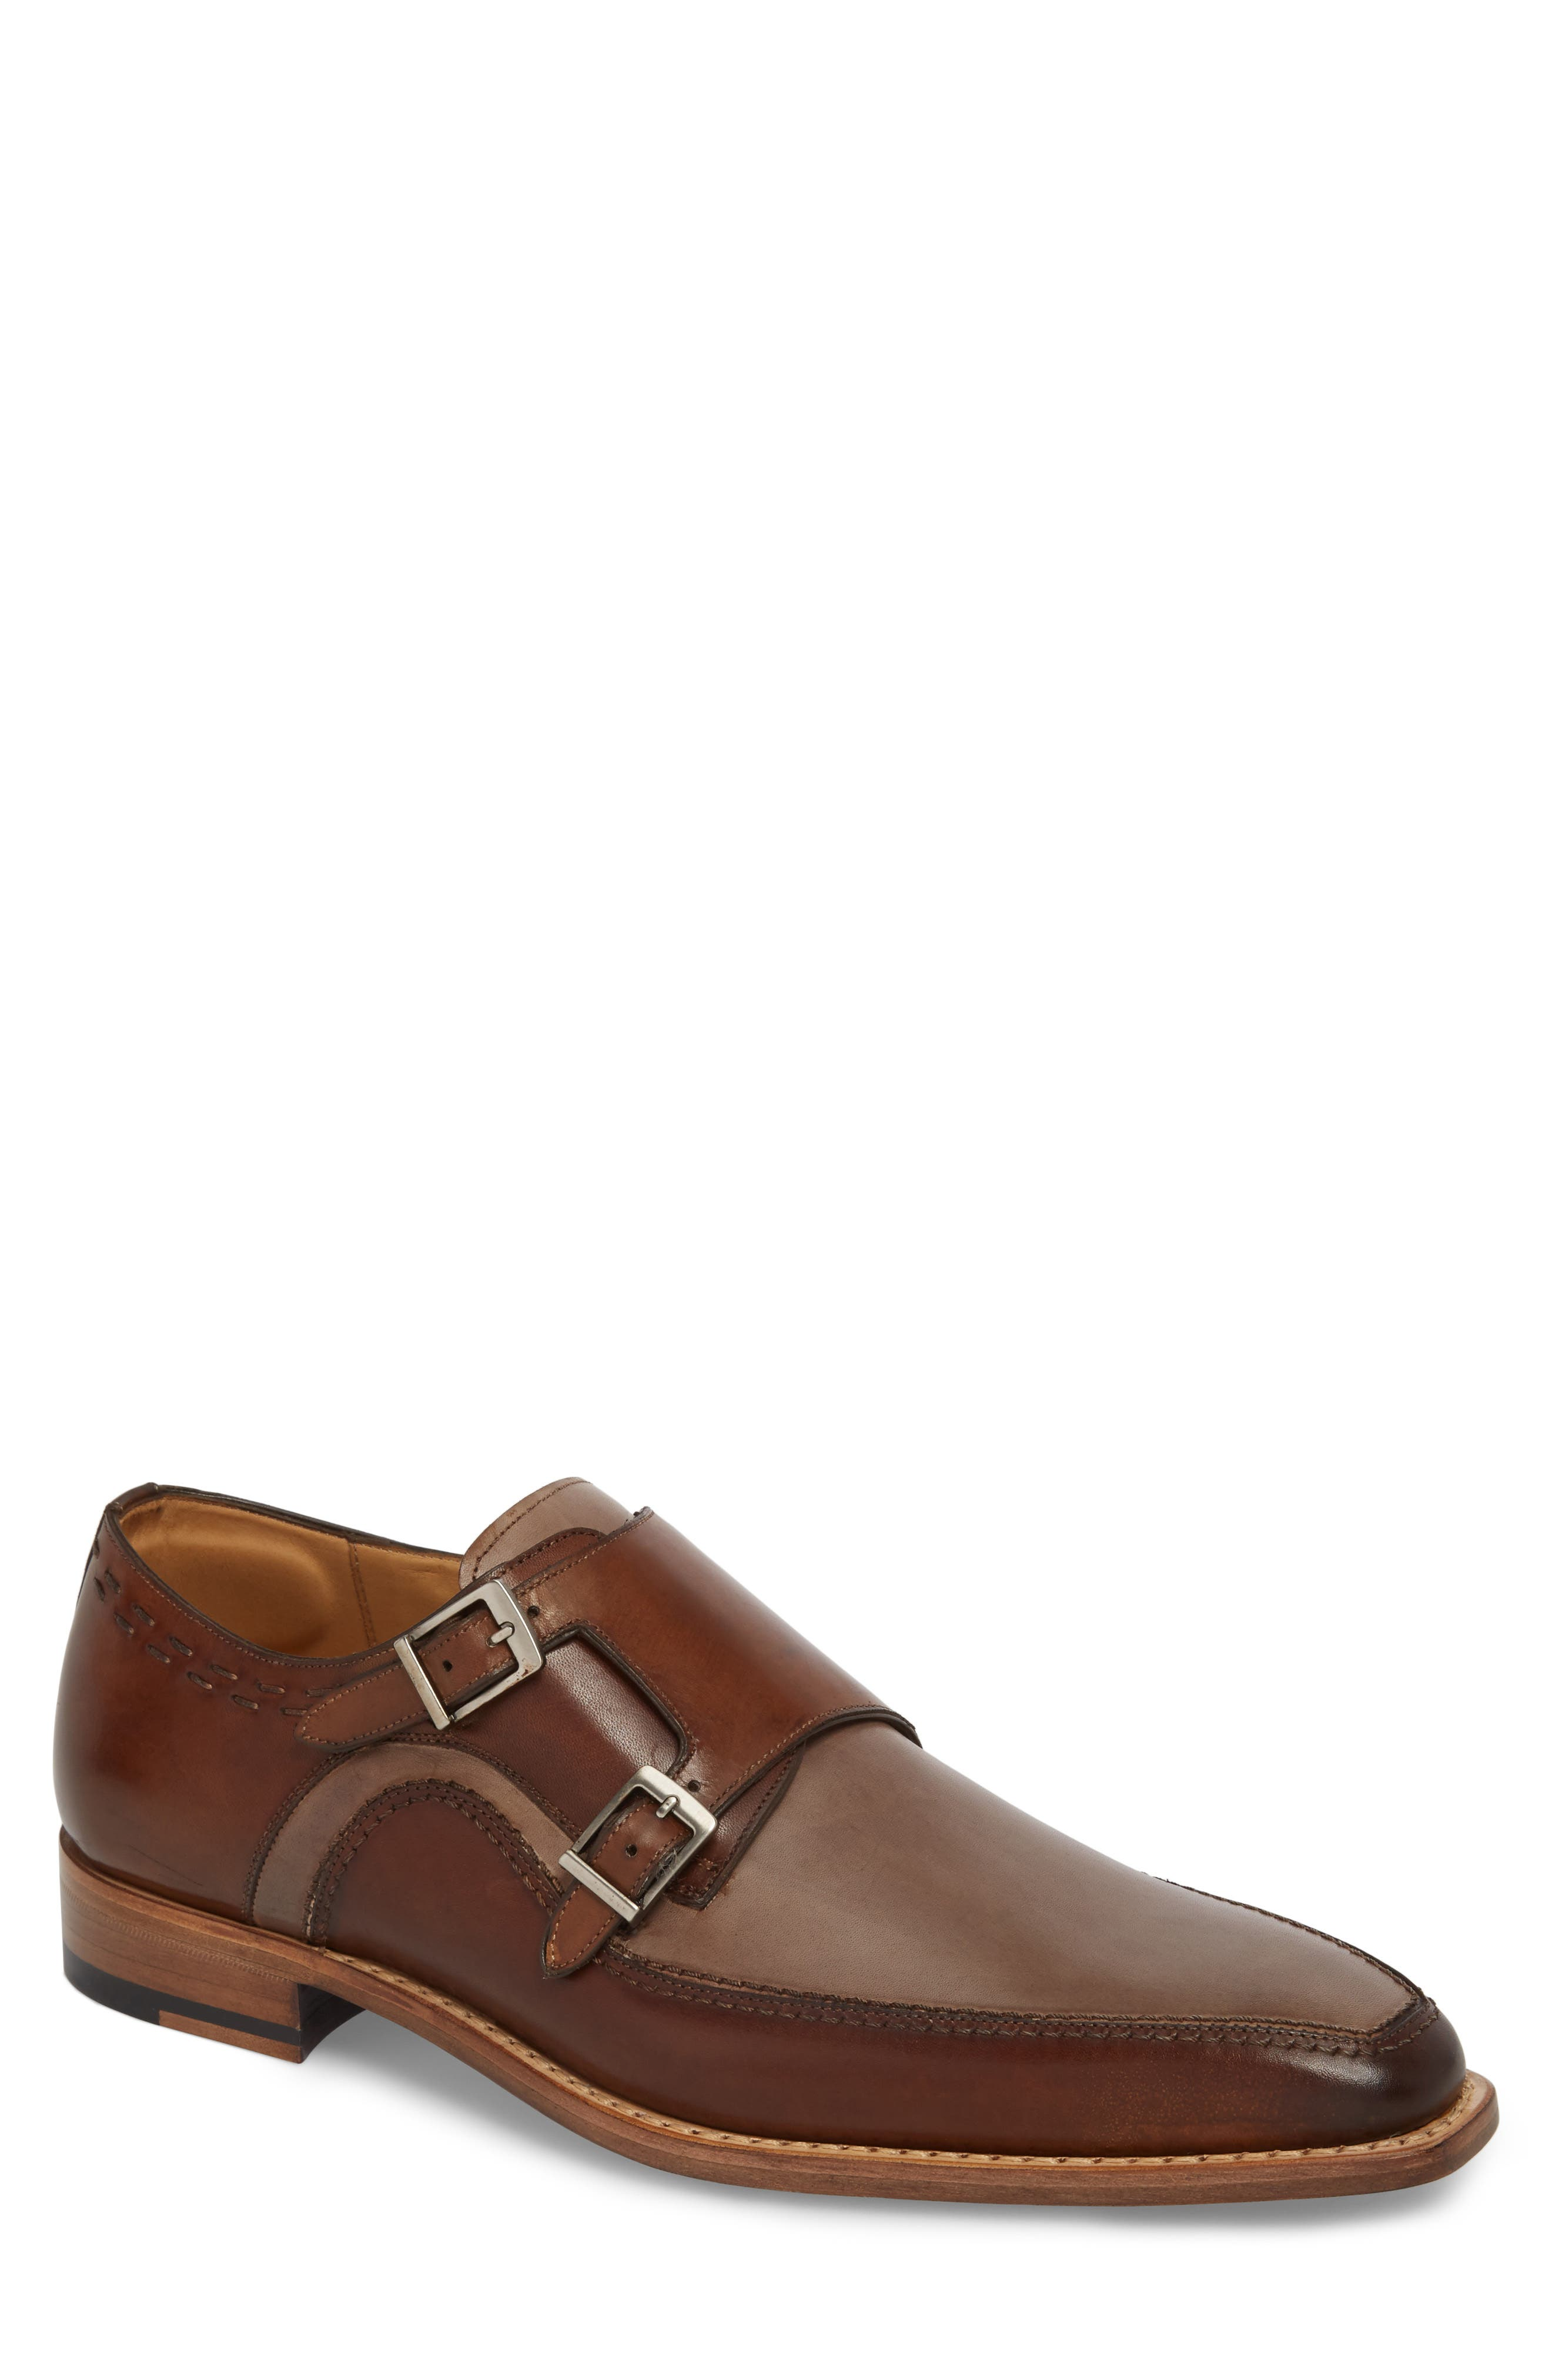 Magno Double Monk Strap Shoe,                             Main thumbnail 1, color,                             Brown Leather